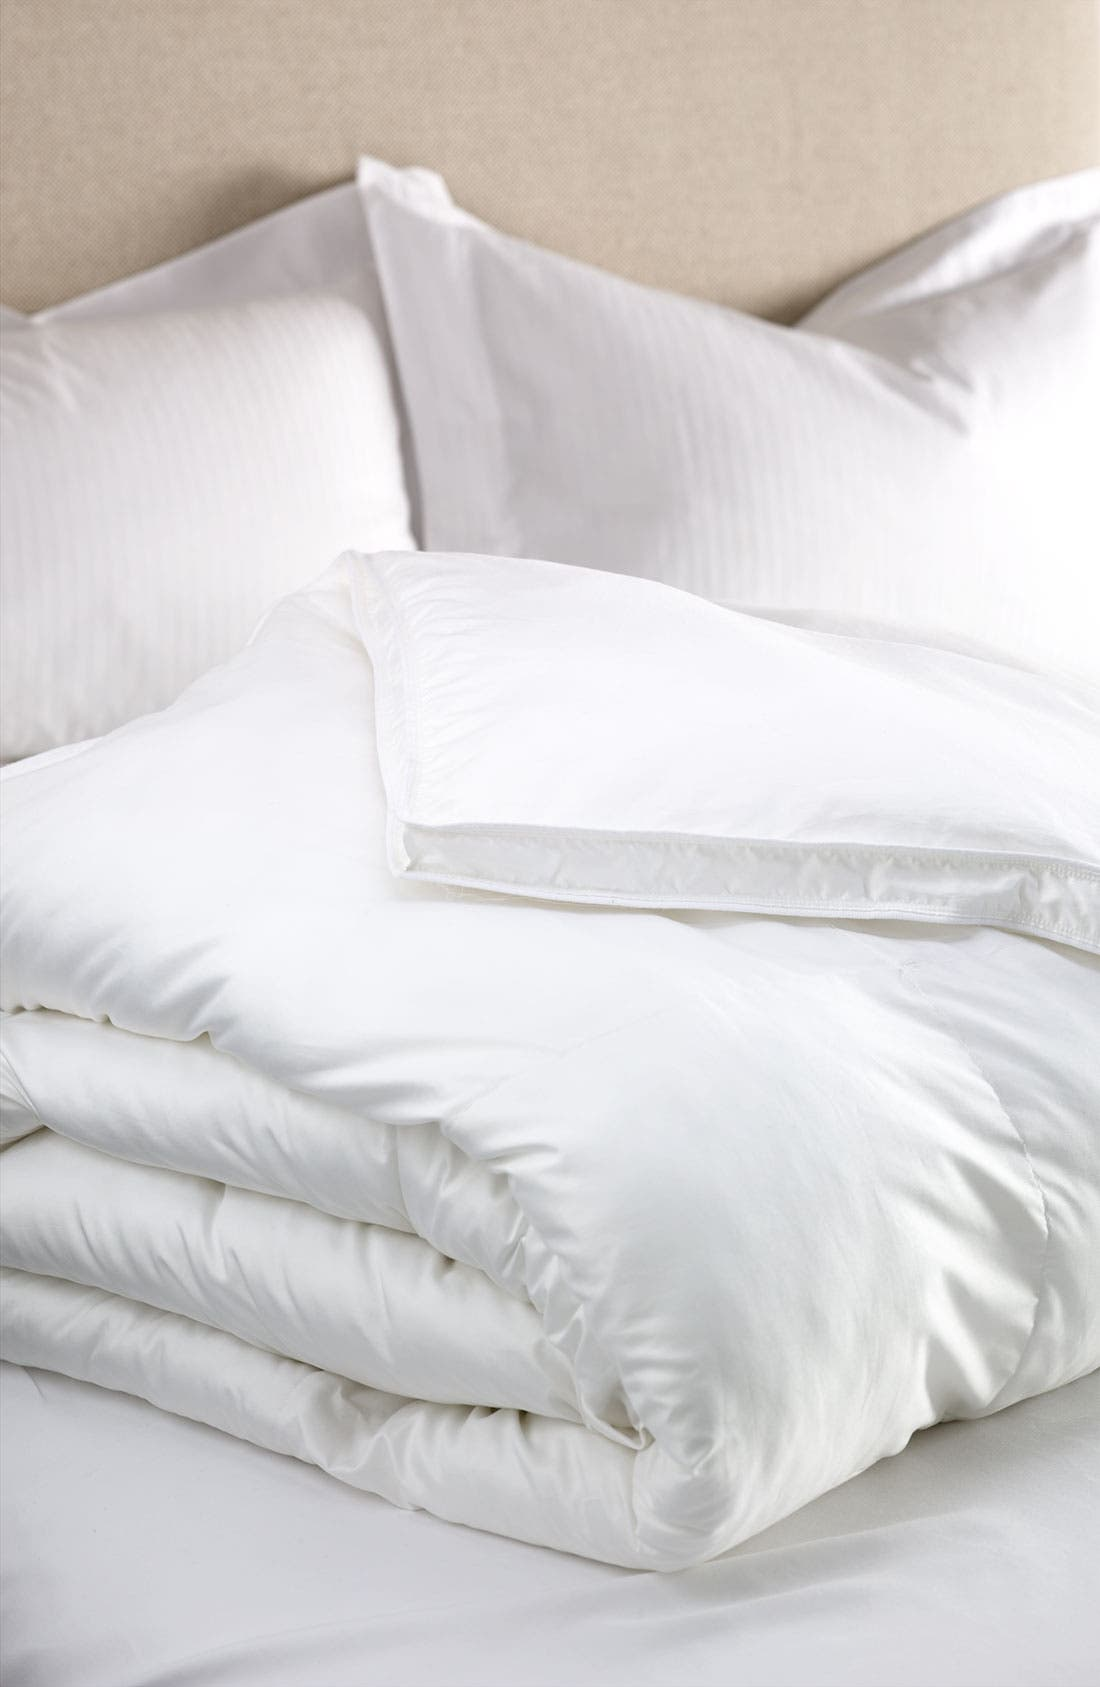 Alternate Image 1 Selected - Westin At Home 200 Thread Count Bed Down Duvet Insert